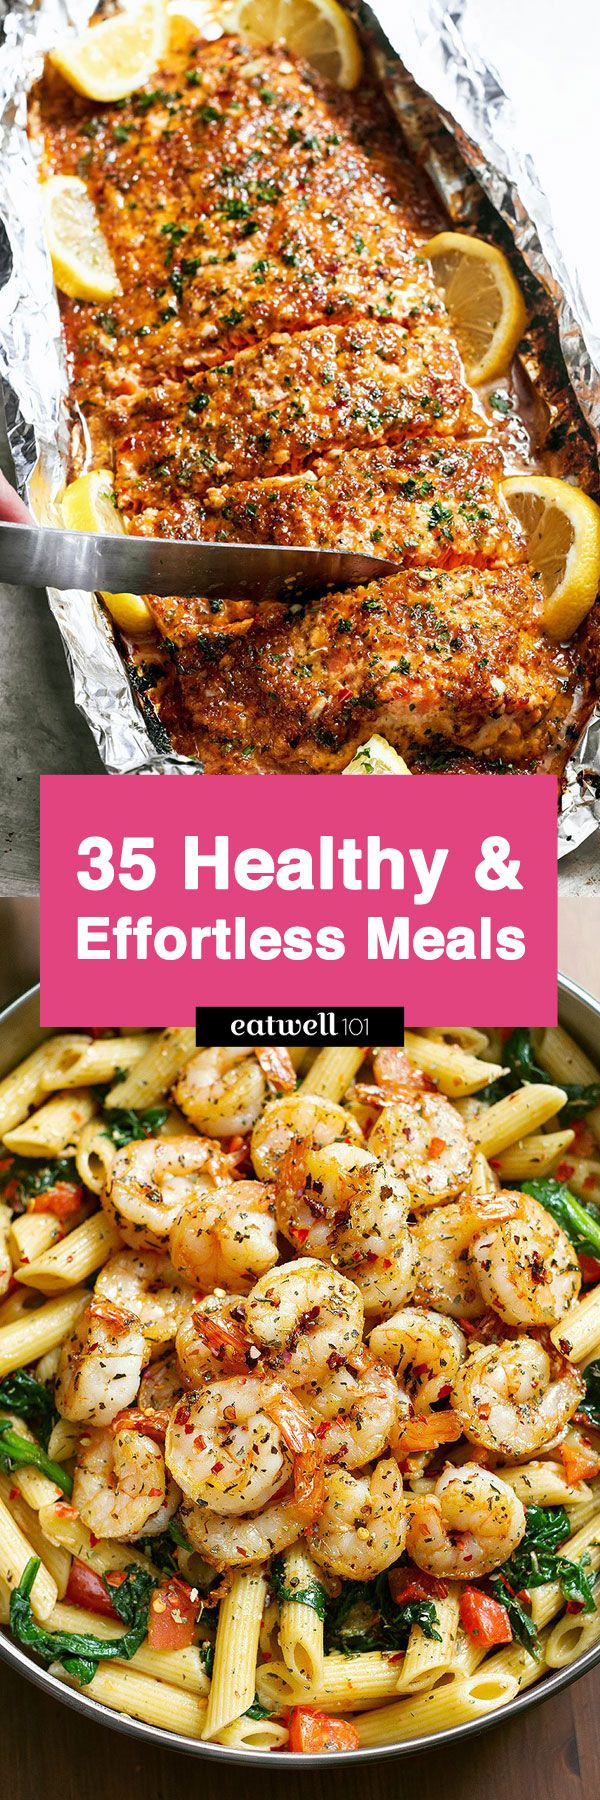 41 low effort and healthy dinner recipes pinterest healthy this is your best friend guide to cook delicious healthy dinners for you and your family with minimal effort these super easy meals are also a great forumfinder Choice Image